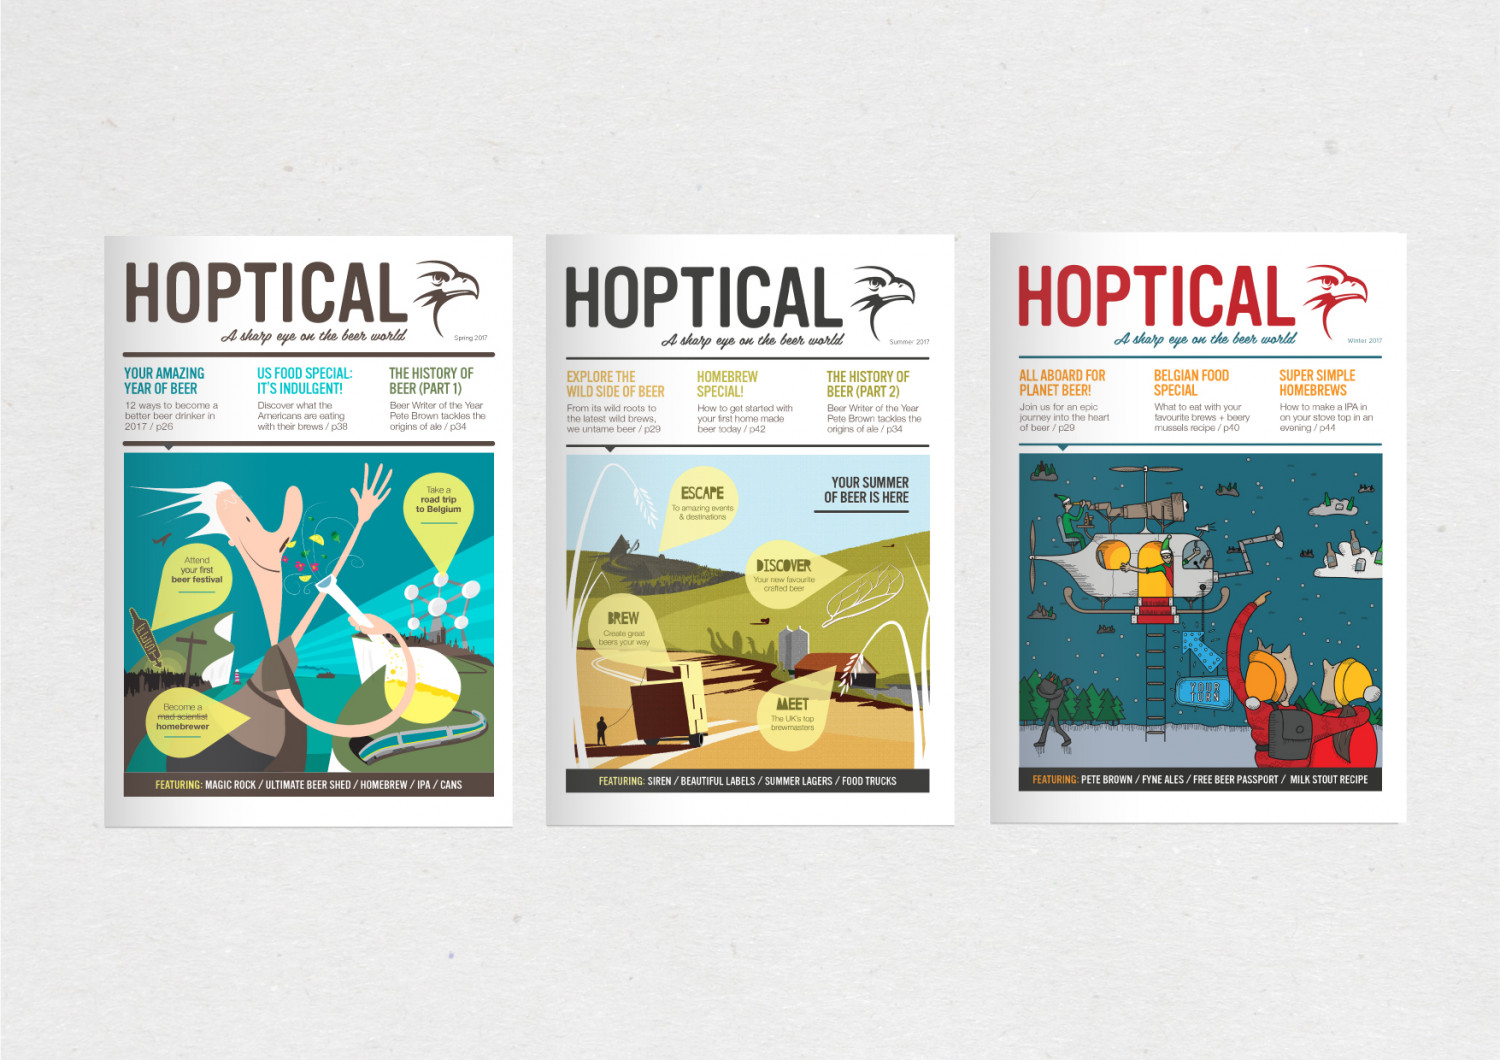 Three Hoptical cover illustrations Infographic